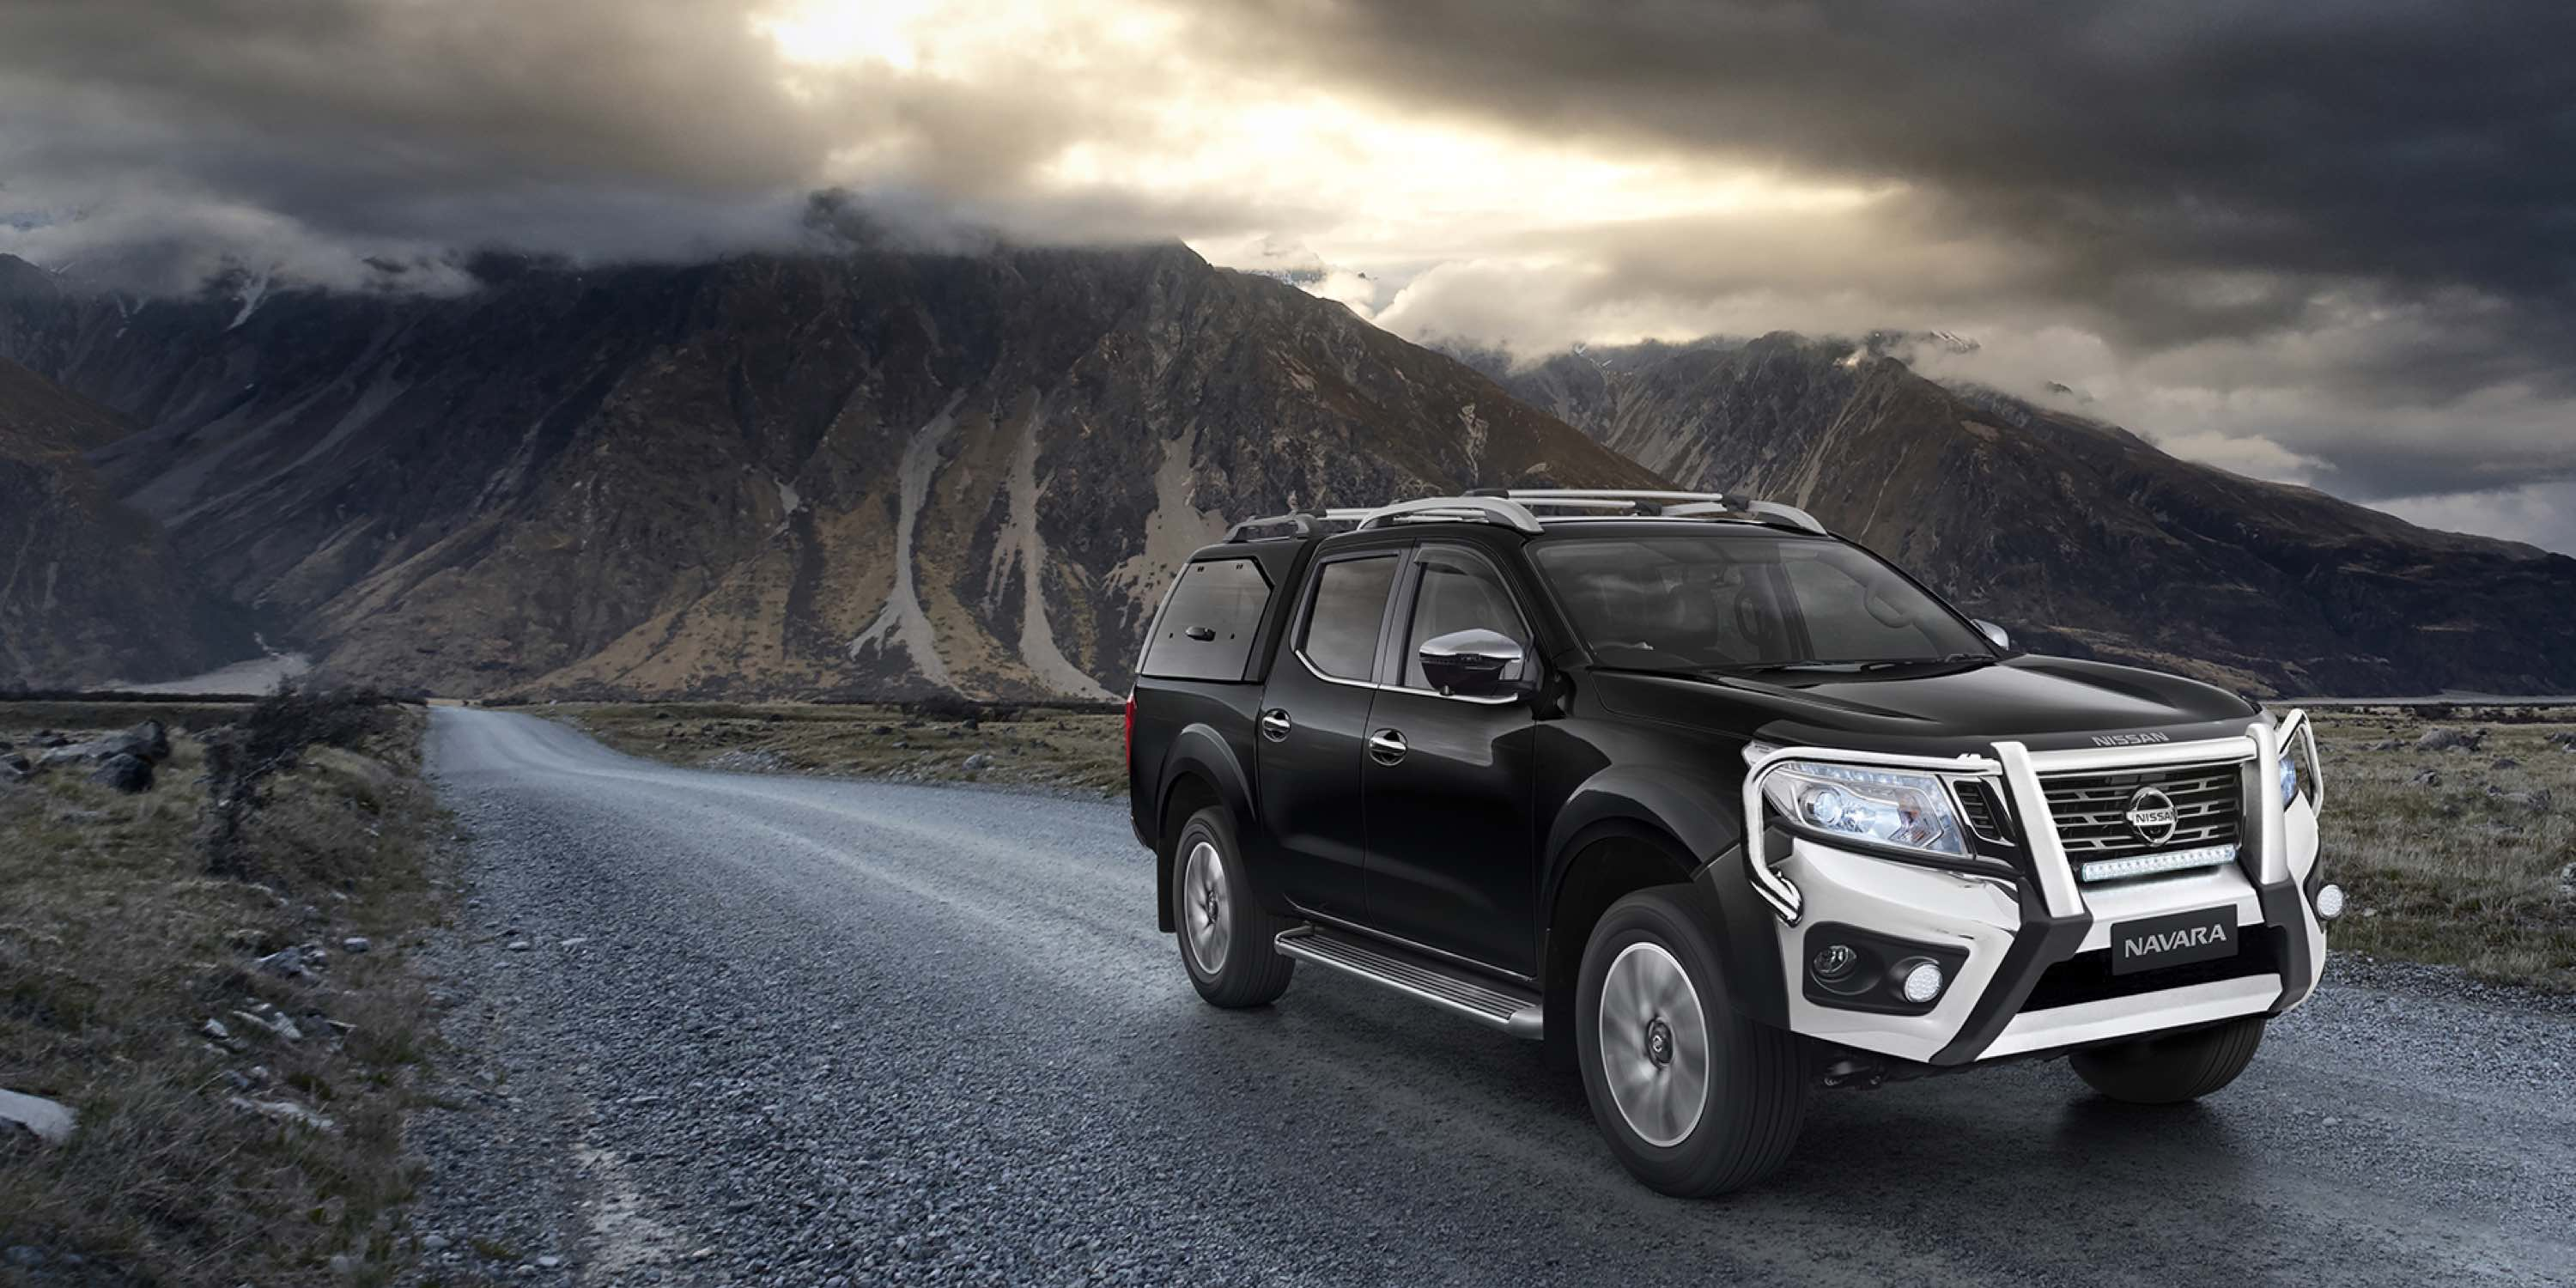 Accessoriesed Nissan Navara driving in front of stormy mountain range